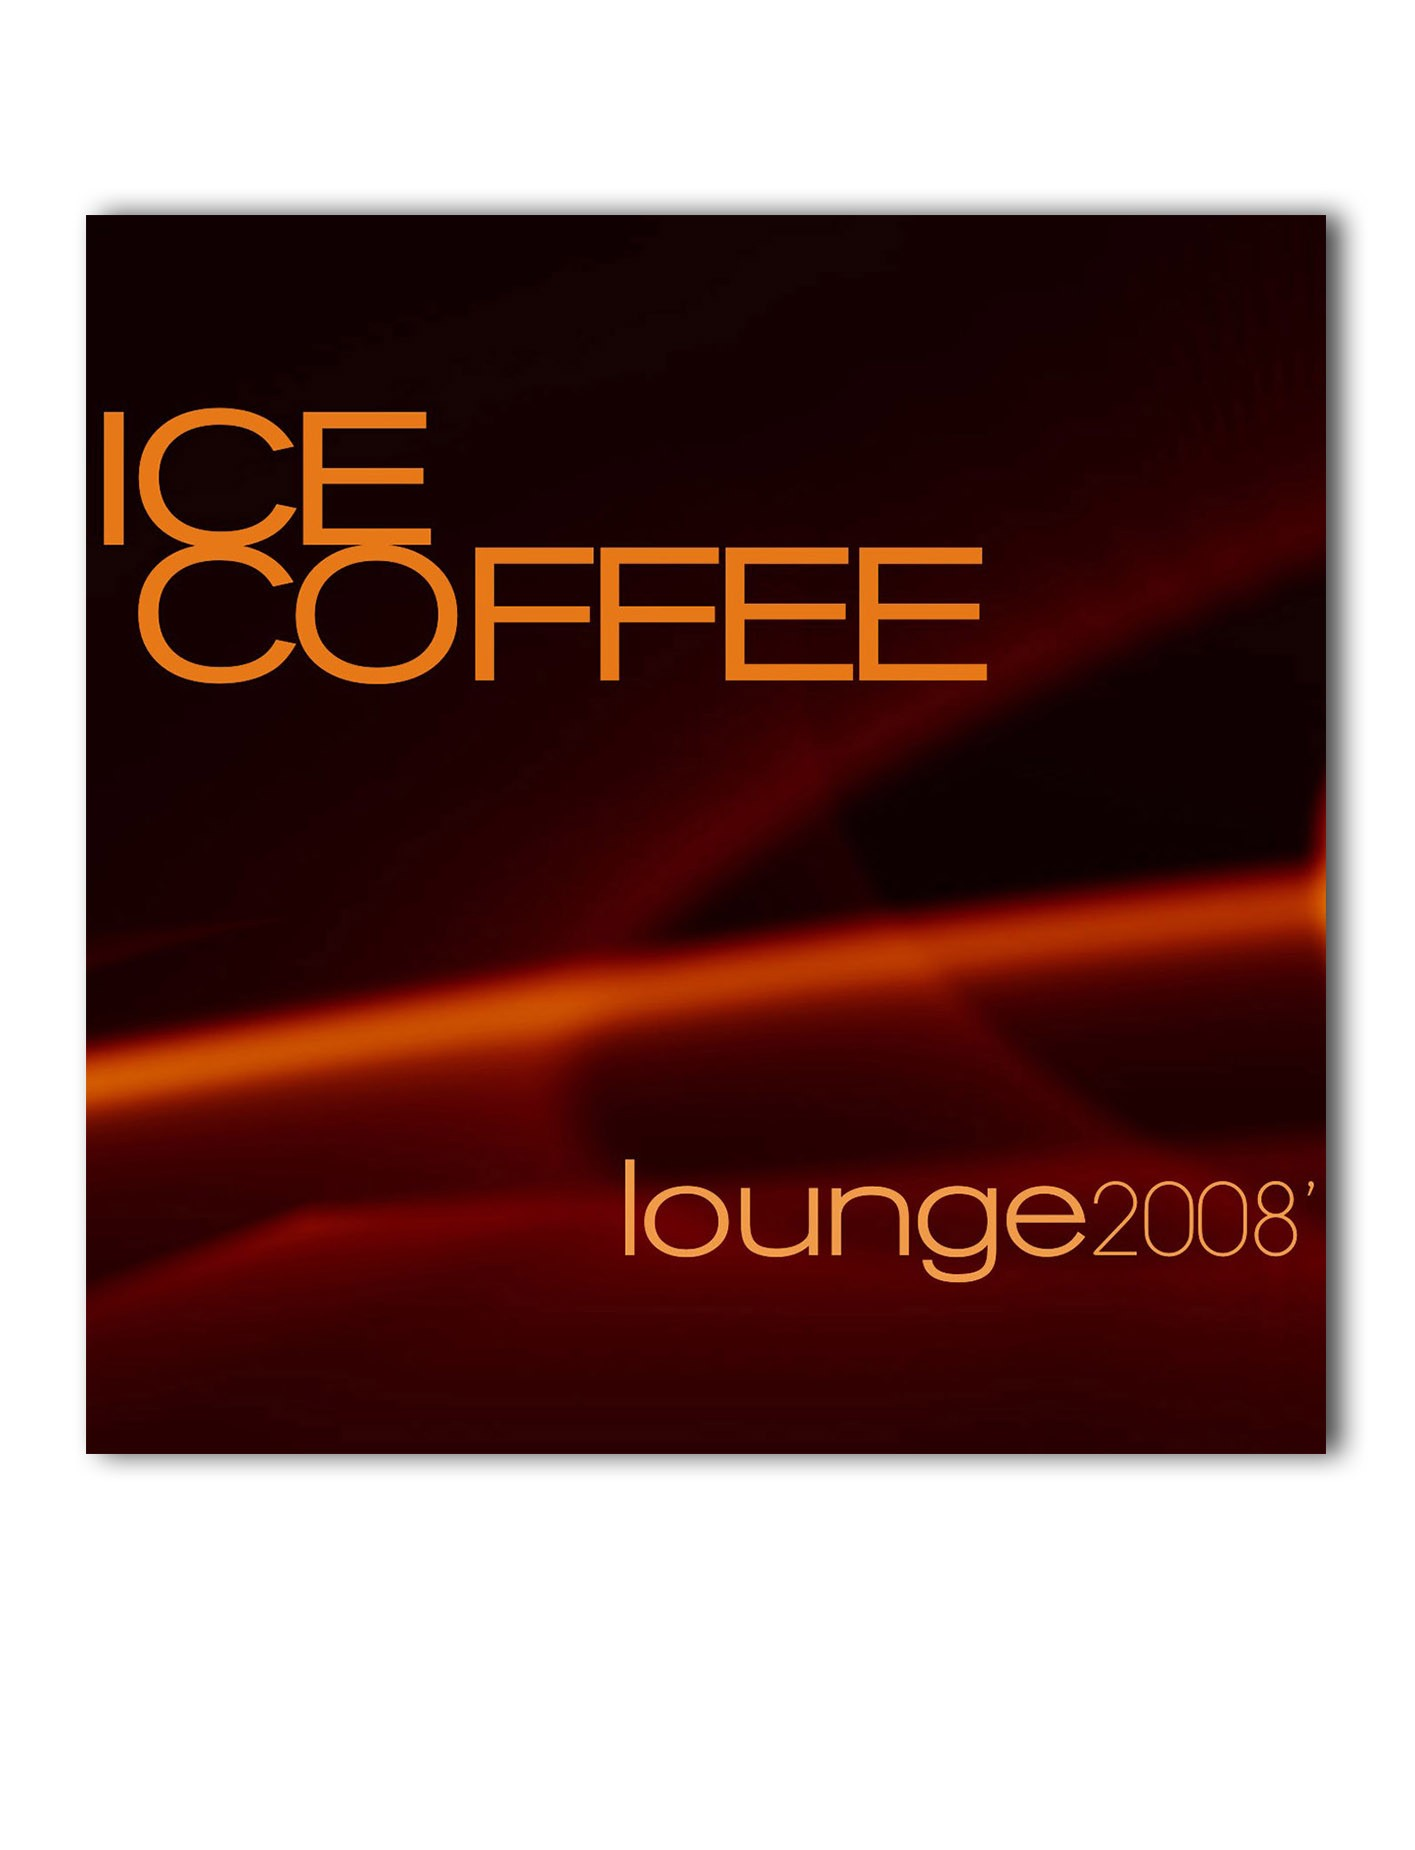 ICE COFFEE LOUNGE 2008 / CD